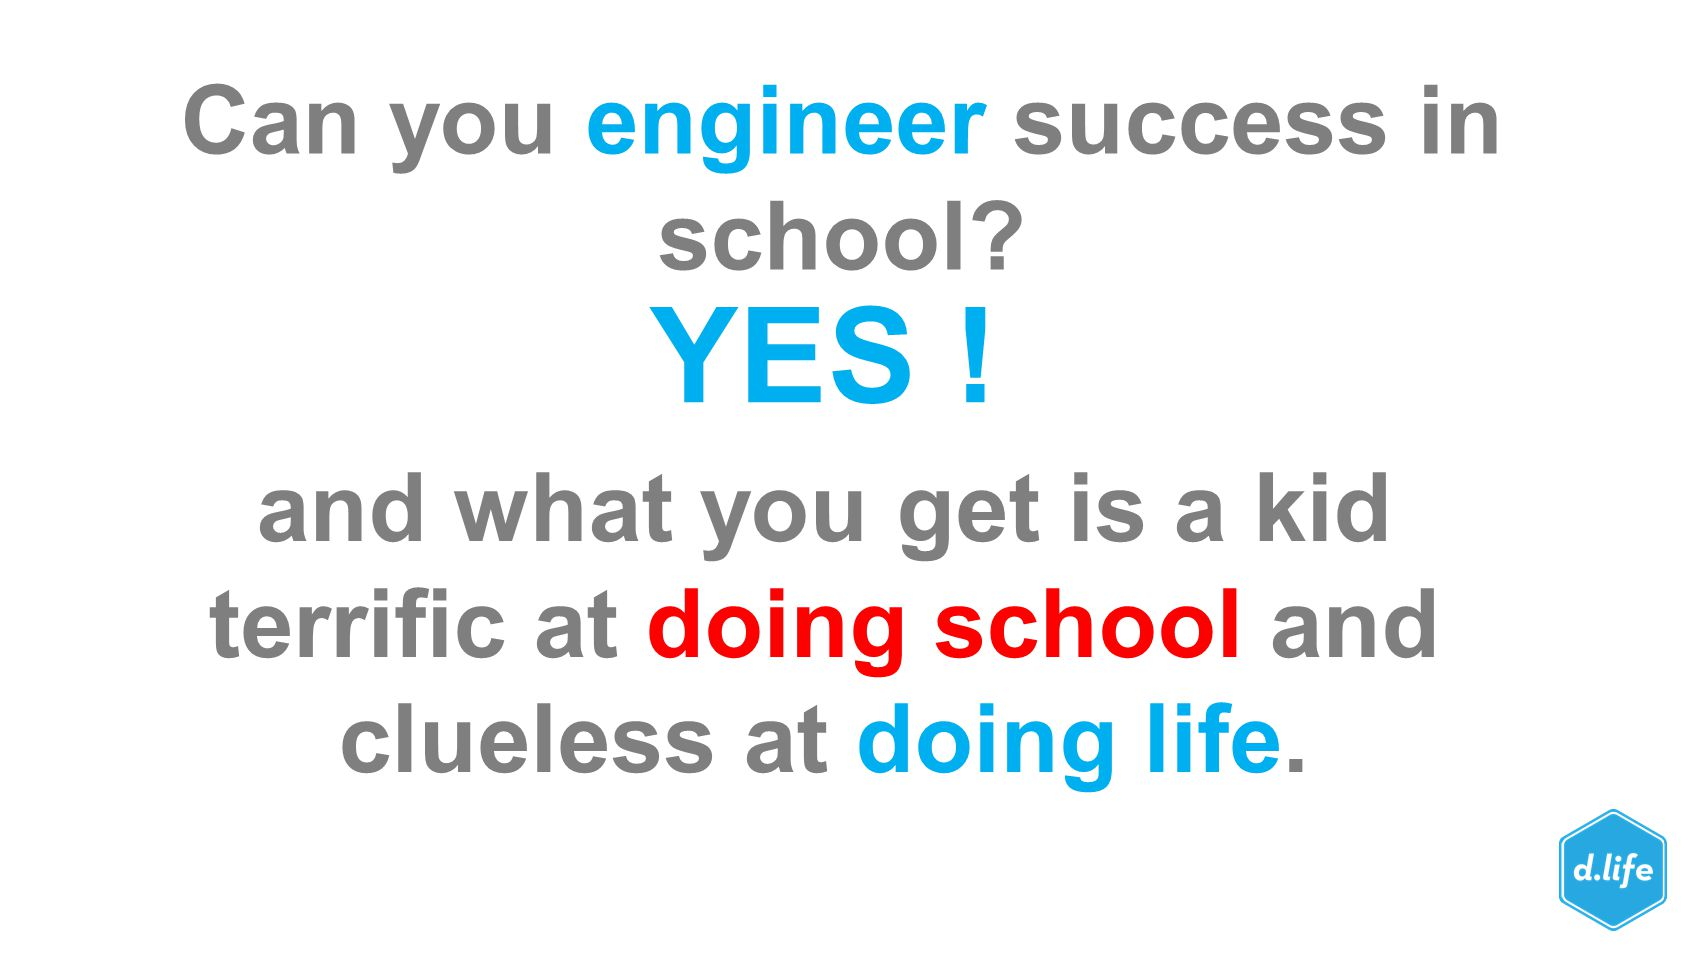 Can you engineer success in school